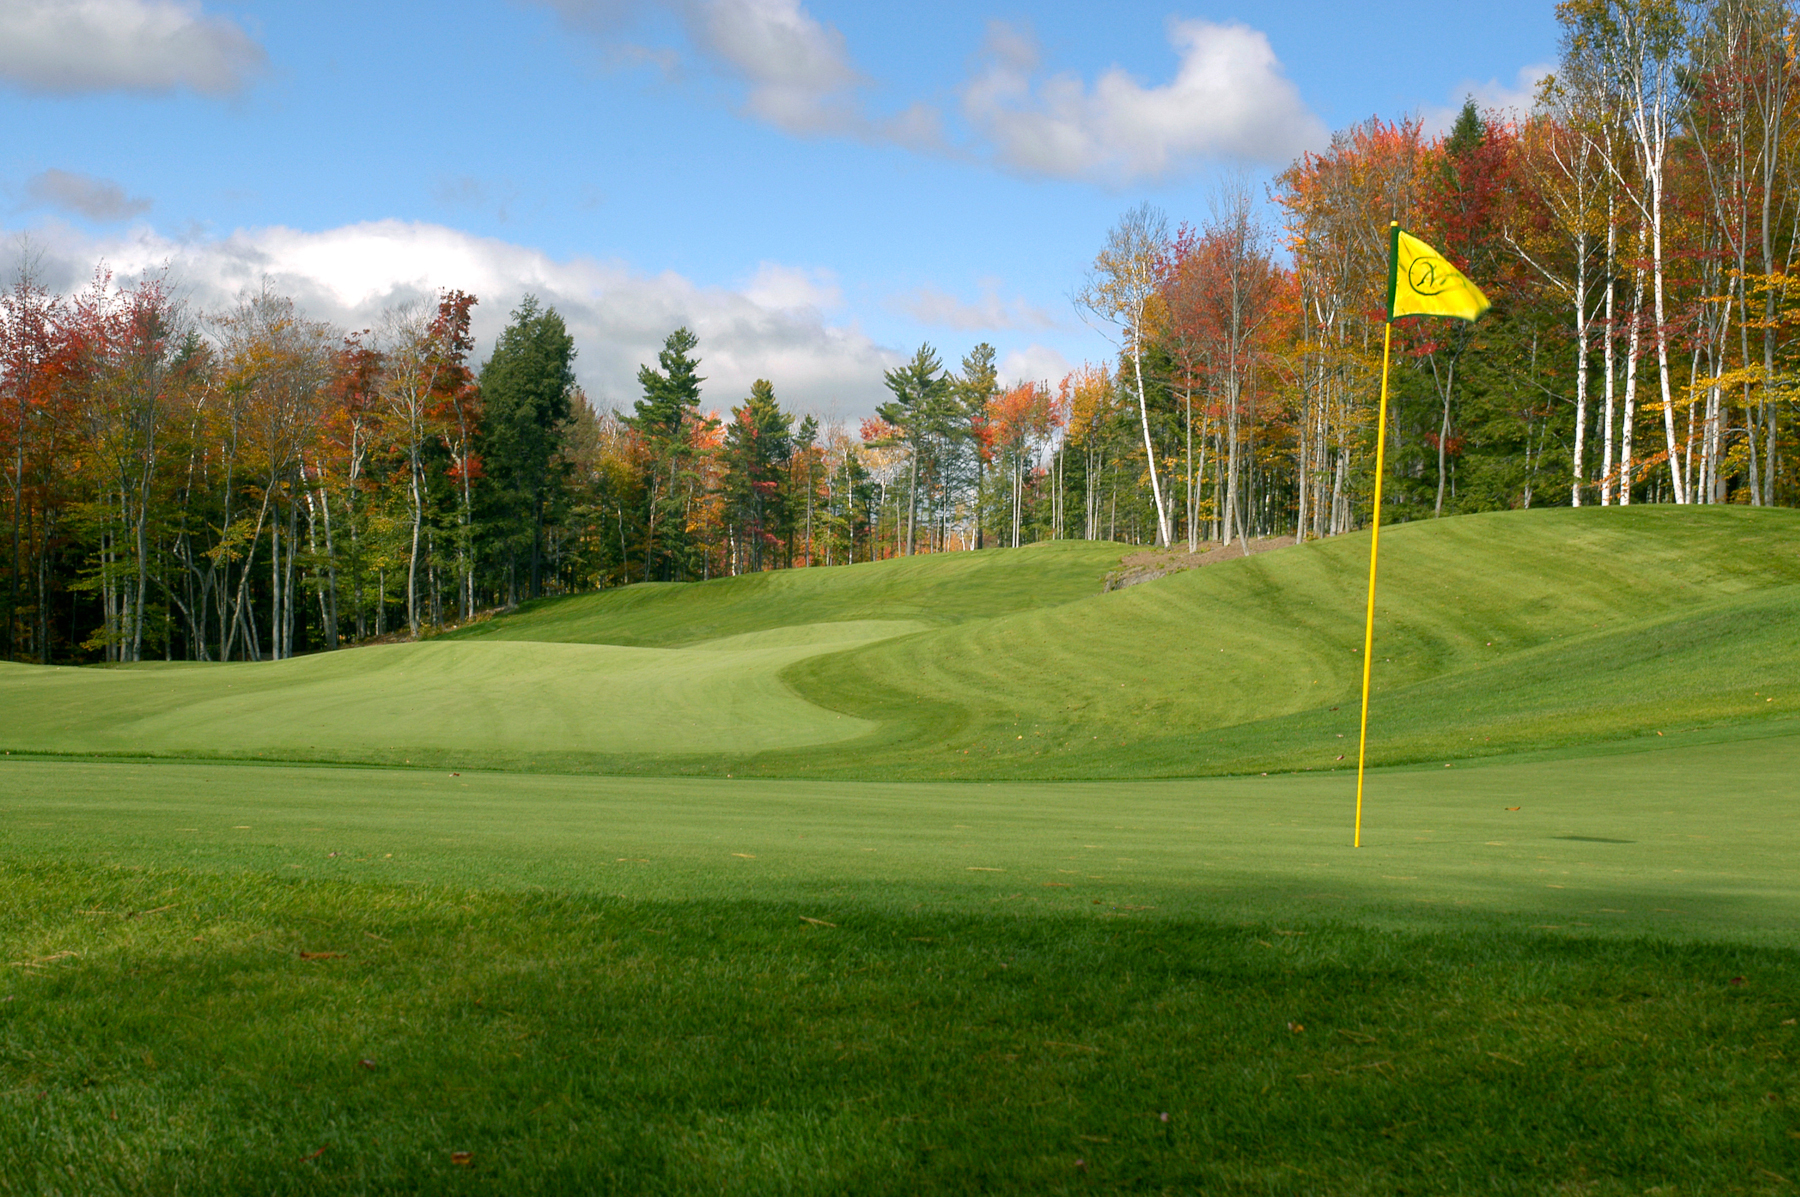 MORE REASONS THAN EVER TO JOIN AND EXPERIENCE MONTCALM GOLF CLUB